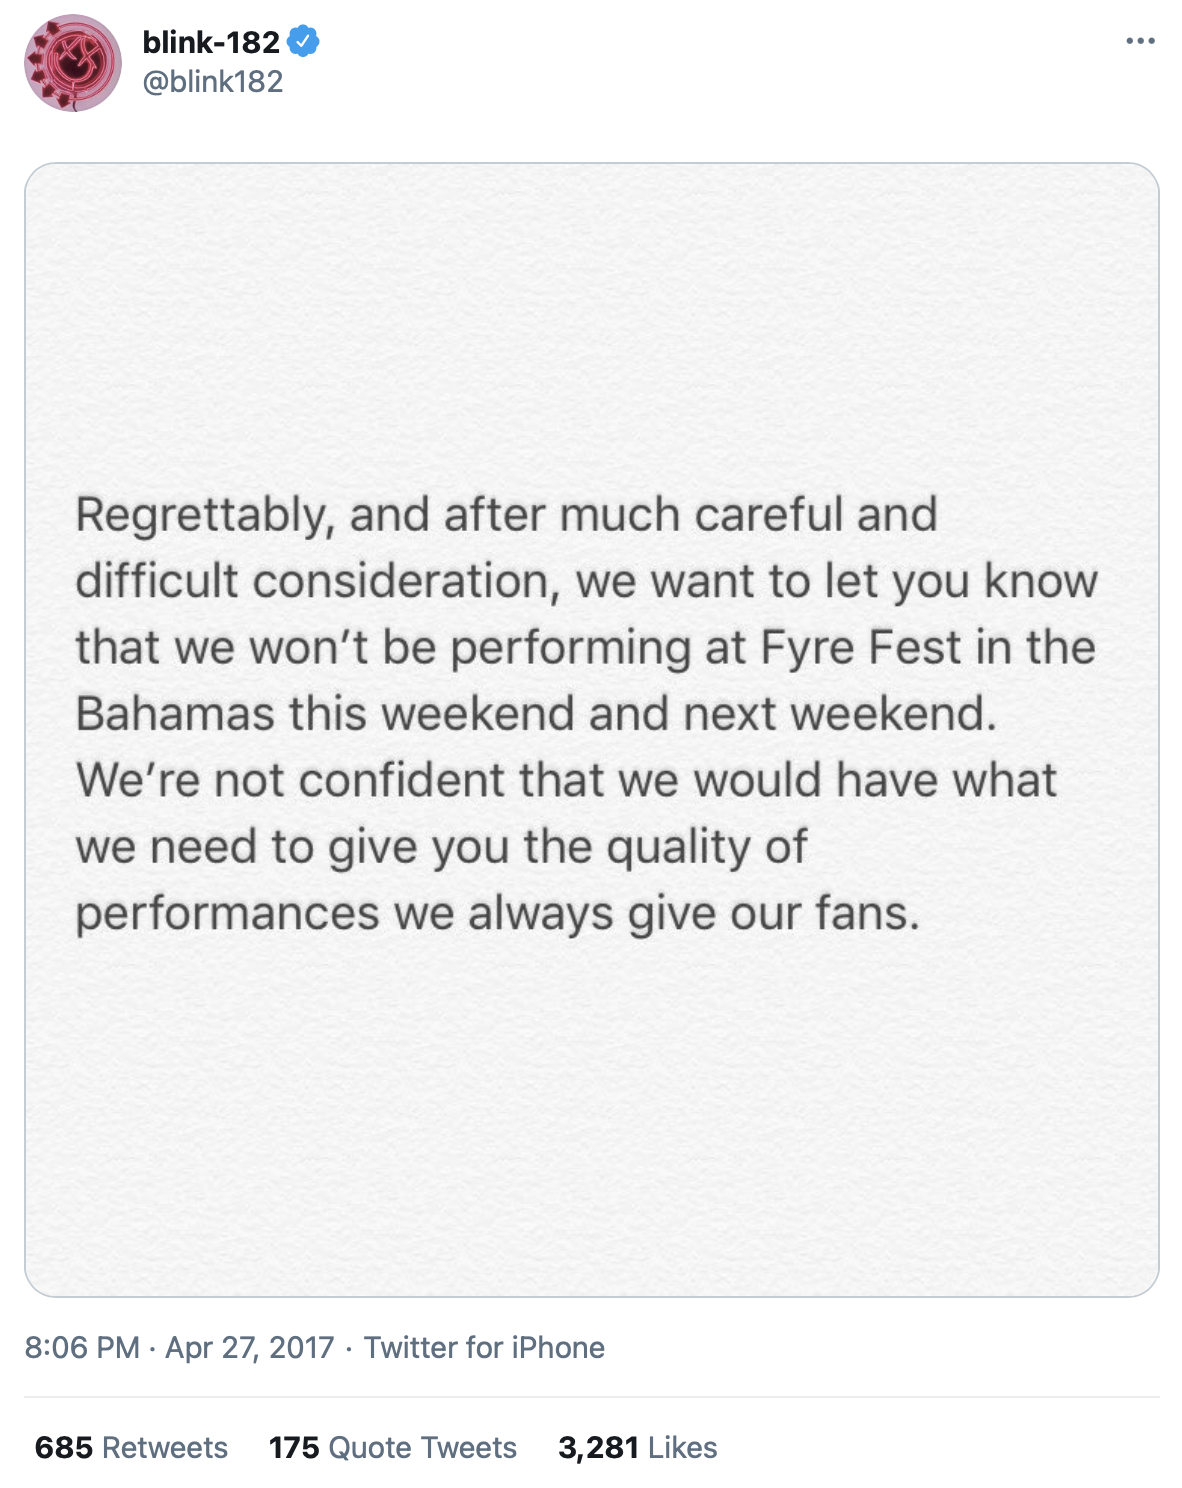 A message from Blink-182 regarding the cancellation of their performance at Fyre Festival via Twitter